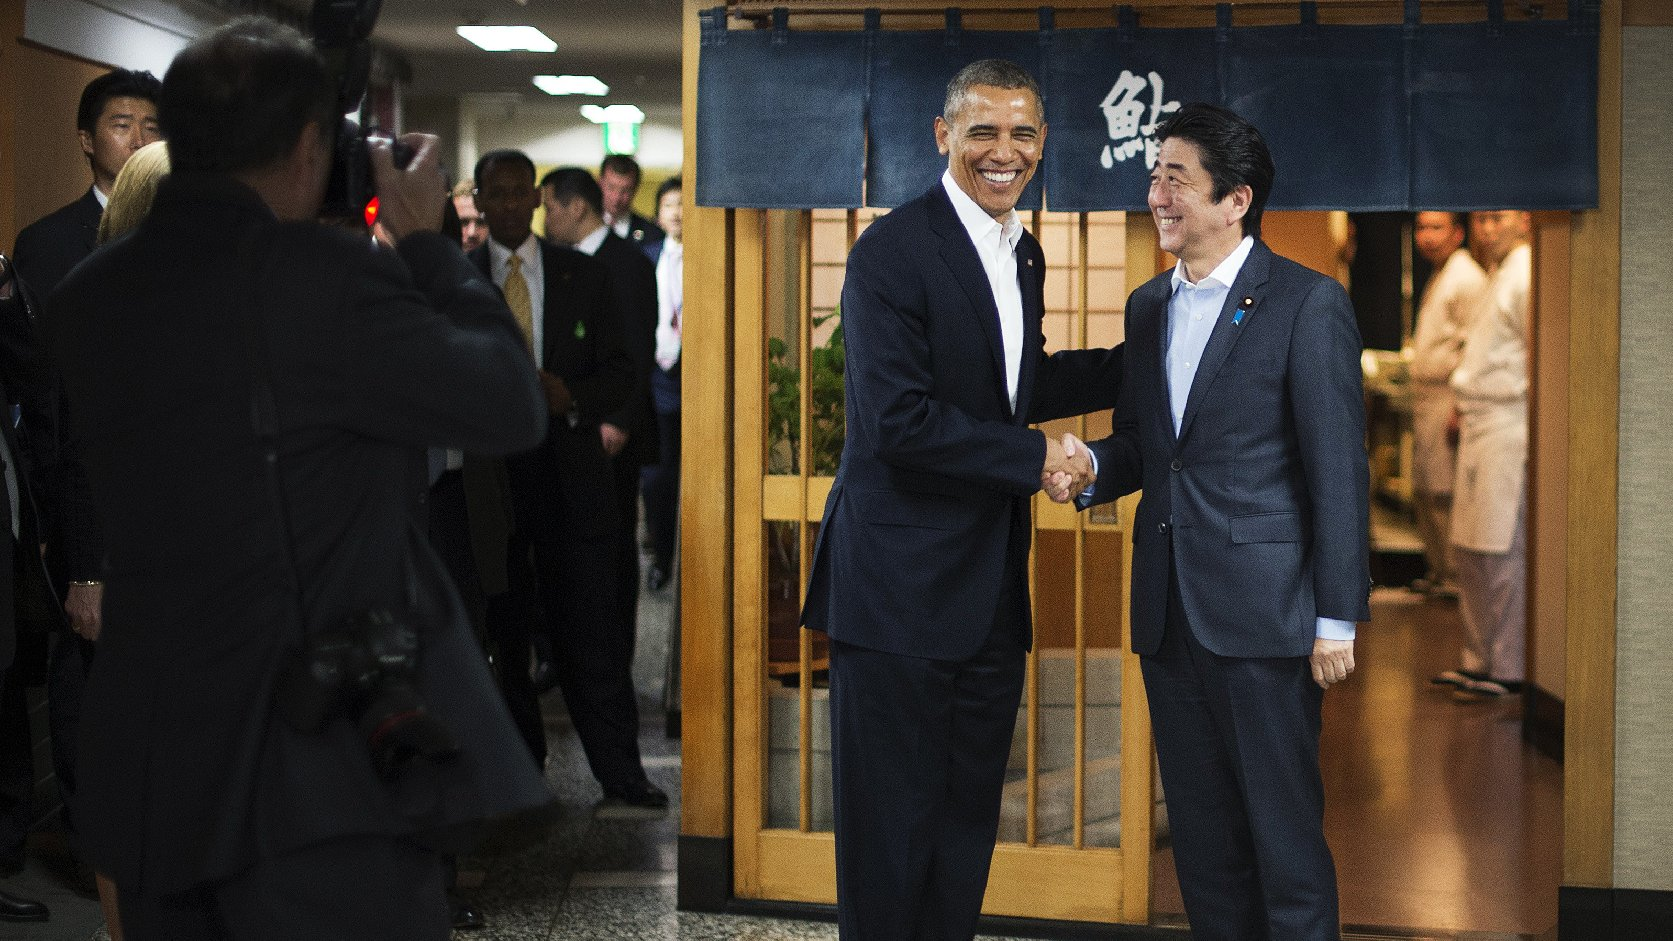 President Obama shakes hands with Japanese Prime Minister Shinzo Abe before a private dinner at Sukiyabashi Jiro restaurant in Tokyo on Wednesday. At Sukiyabashi Jiro, people pay a minimum $300 for 20 pieces of sushi chosen by the patron, Jiro Ono. Photo: Jim Watson/AFP/Getty Images